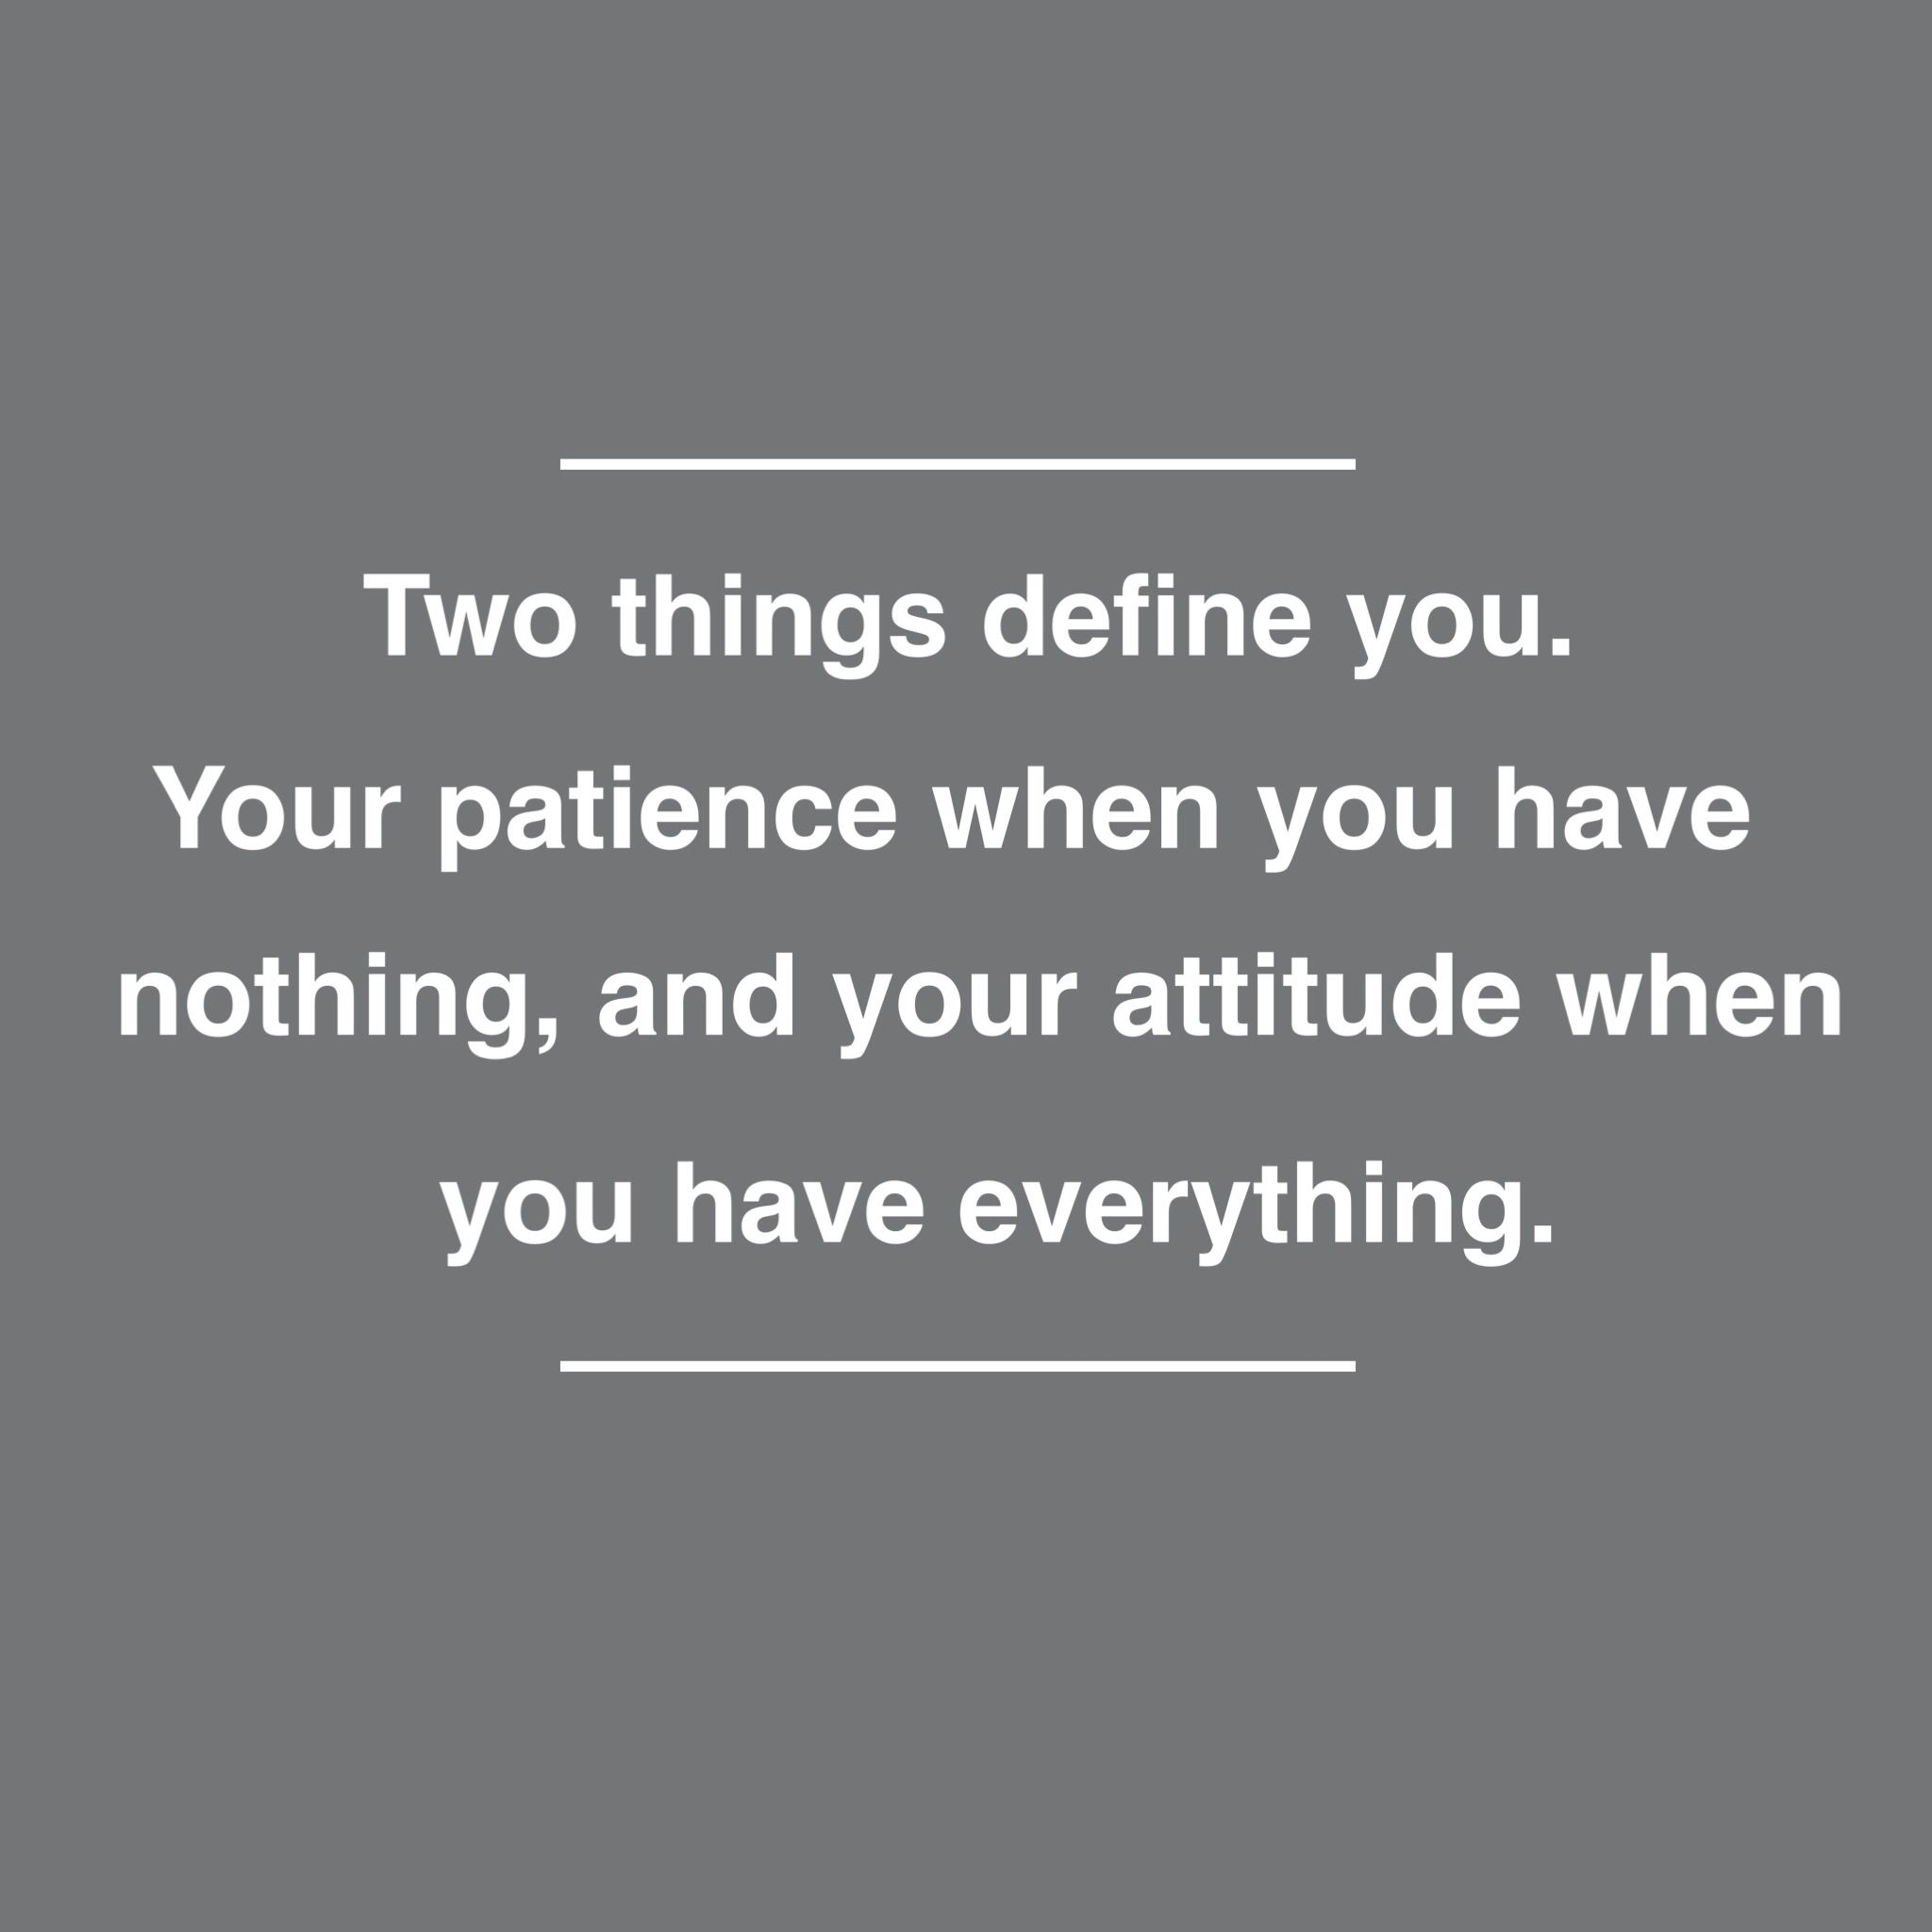 Two things define you patience when you have nothing attitude when you have everything